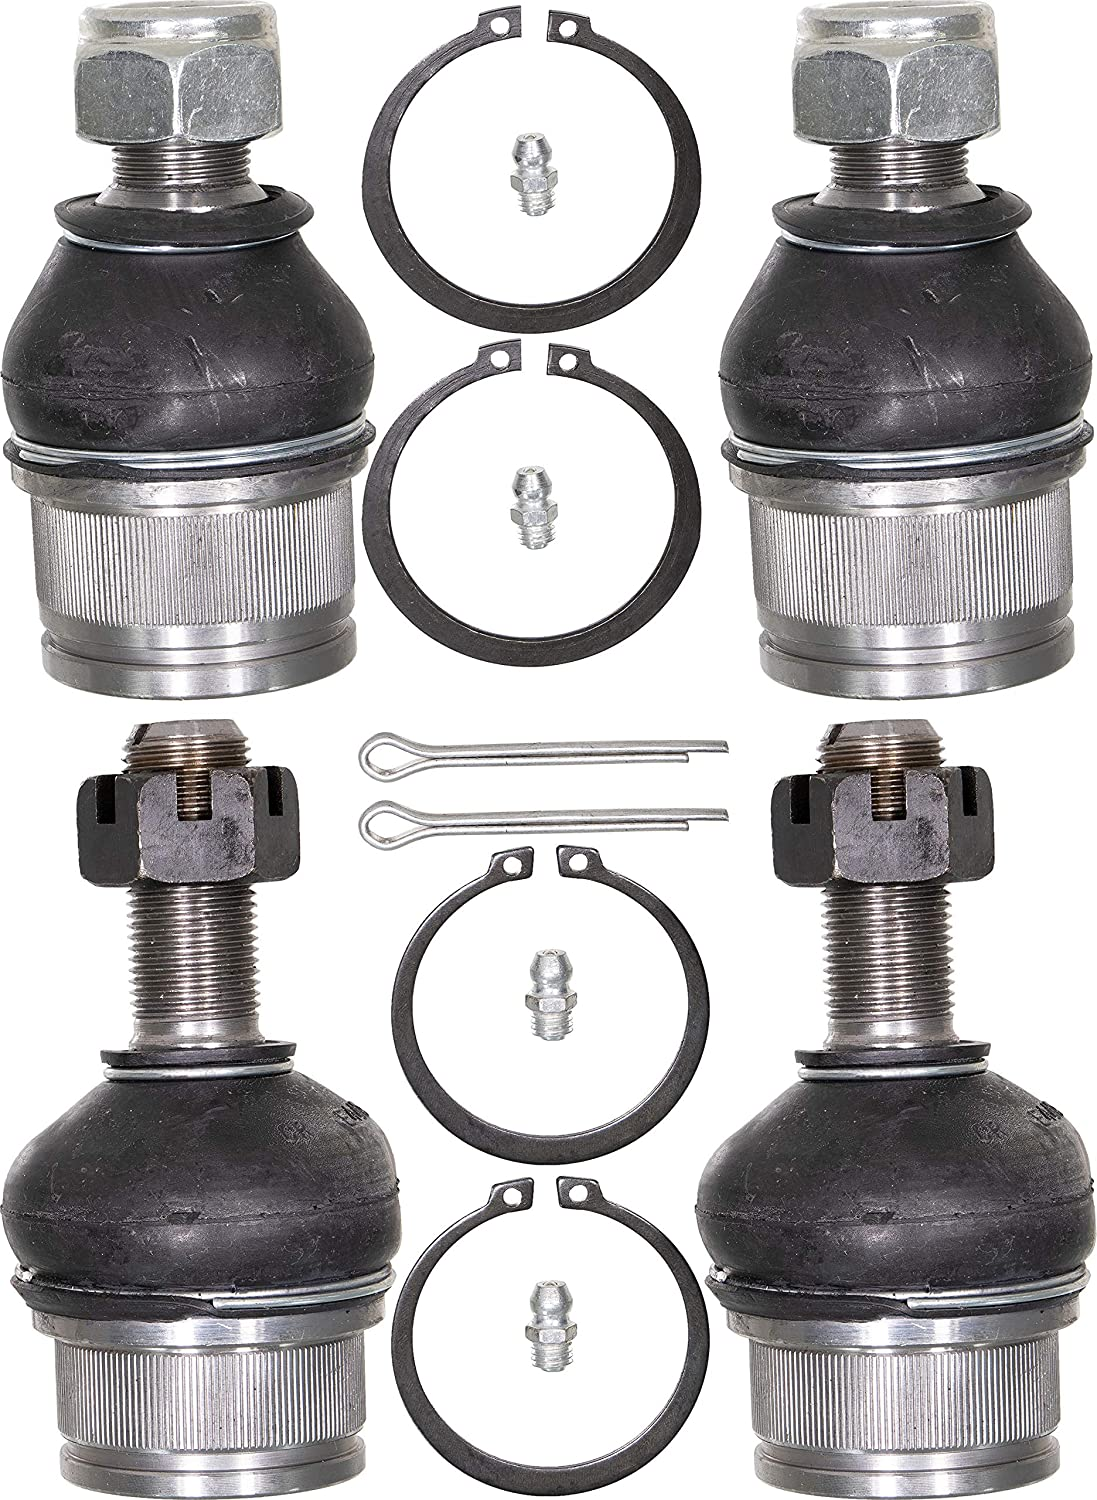 4-Wheel Drive Models Only; Grease-able Design w//Zerts; Front Upper /& Lower Left /& Right APDTY 141447 Ball Joint Set Of 4 Fits 1999-2015 Ford F250 F350 F450 Super Duty Pickup 2000-05 Excursion